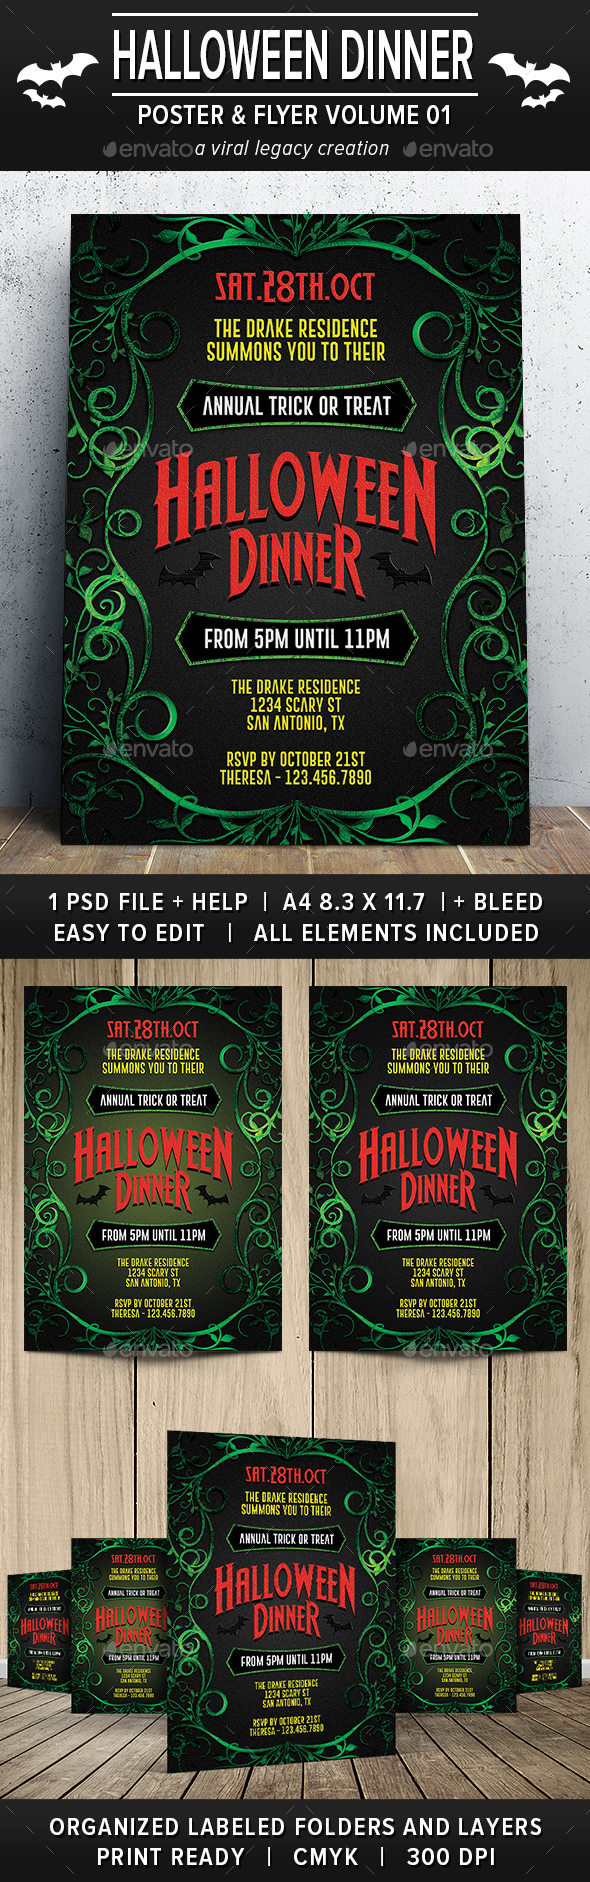 Halloween Dinner Party Poster / Flyer V01 - Flyers Print Templates